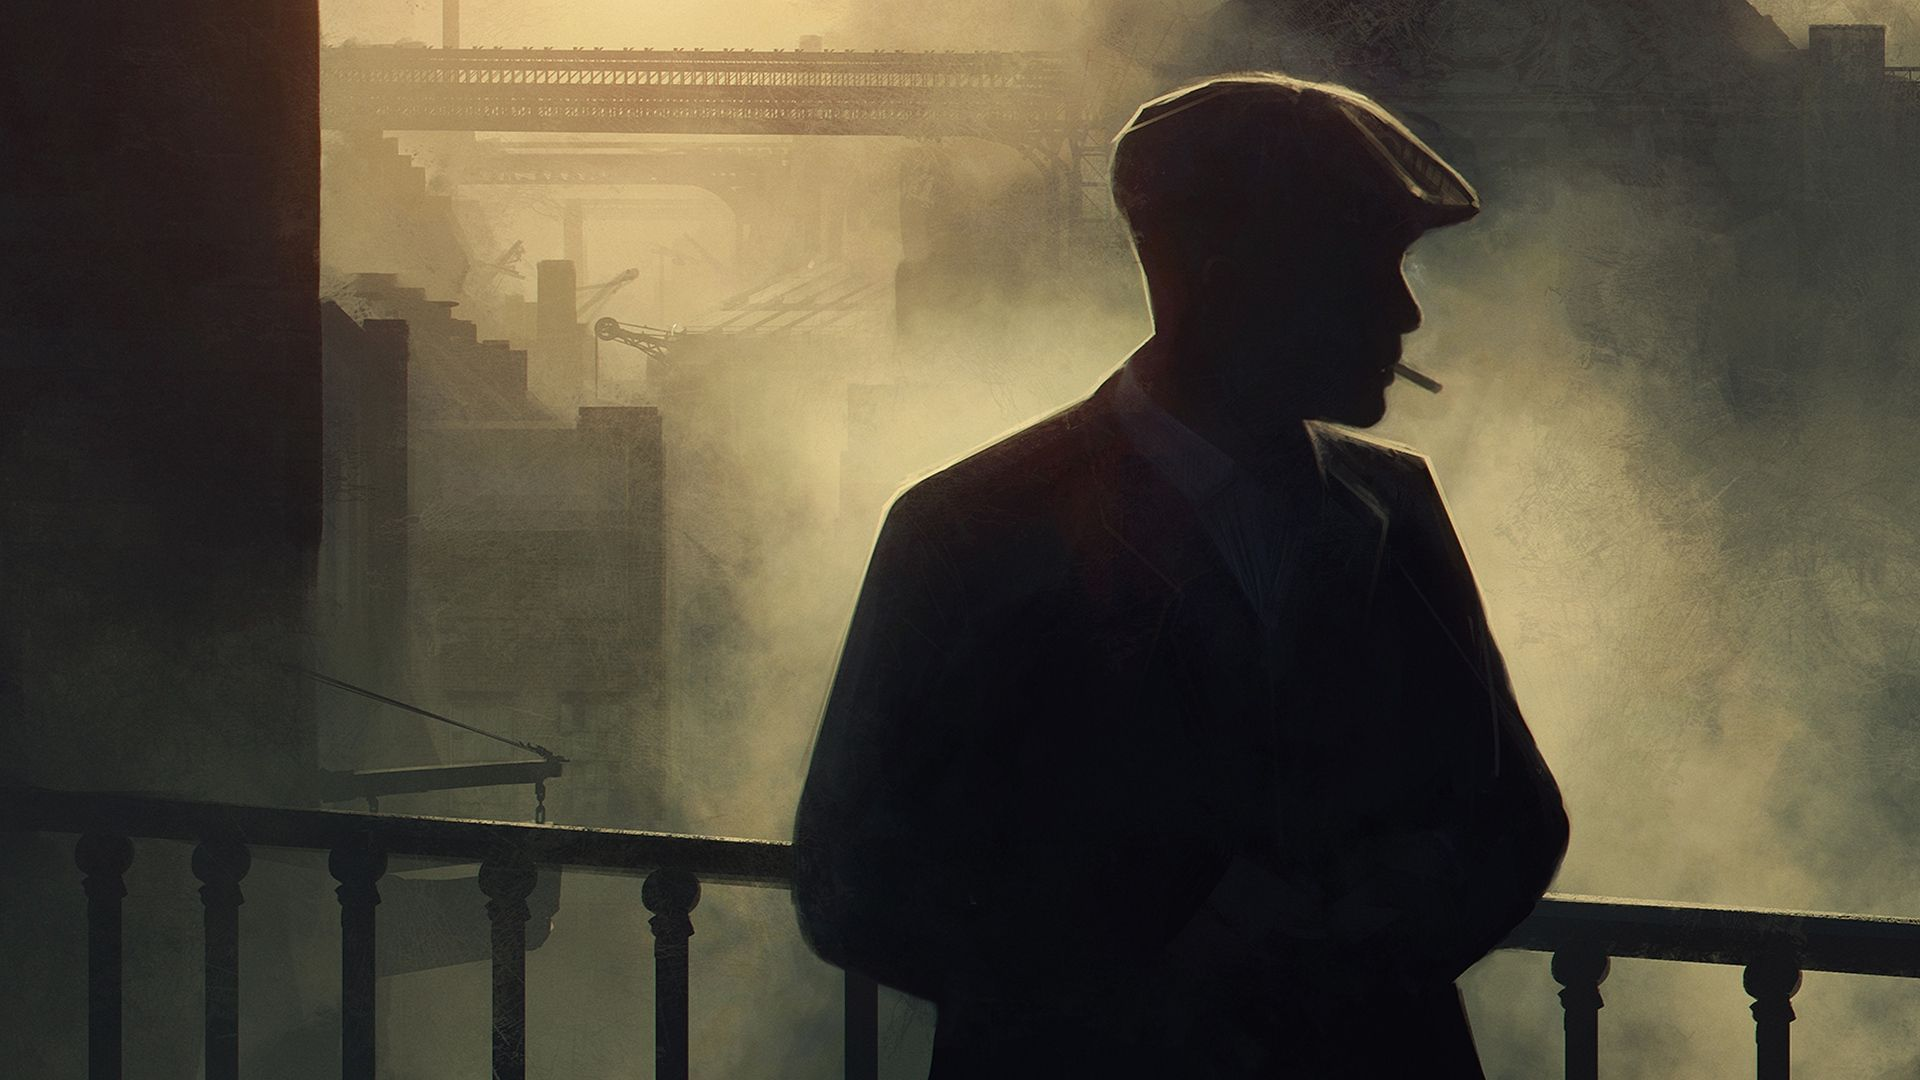 Peaky Blinders Wallpaper Iphone X Peaky Blinders Wallpapers Group 58